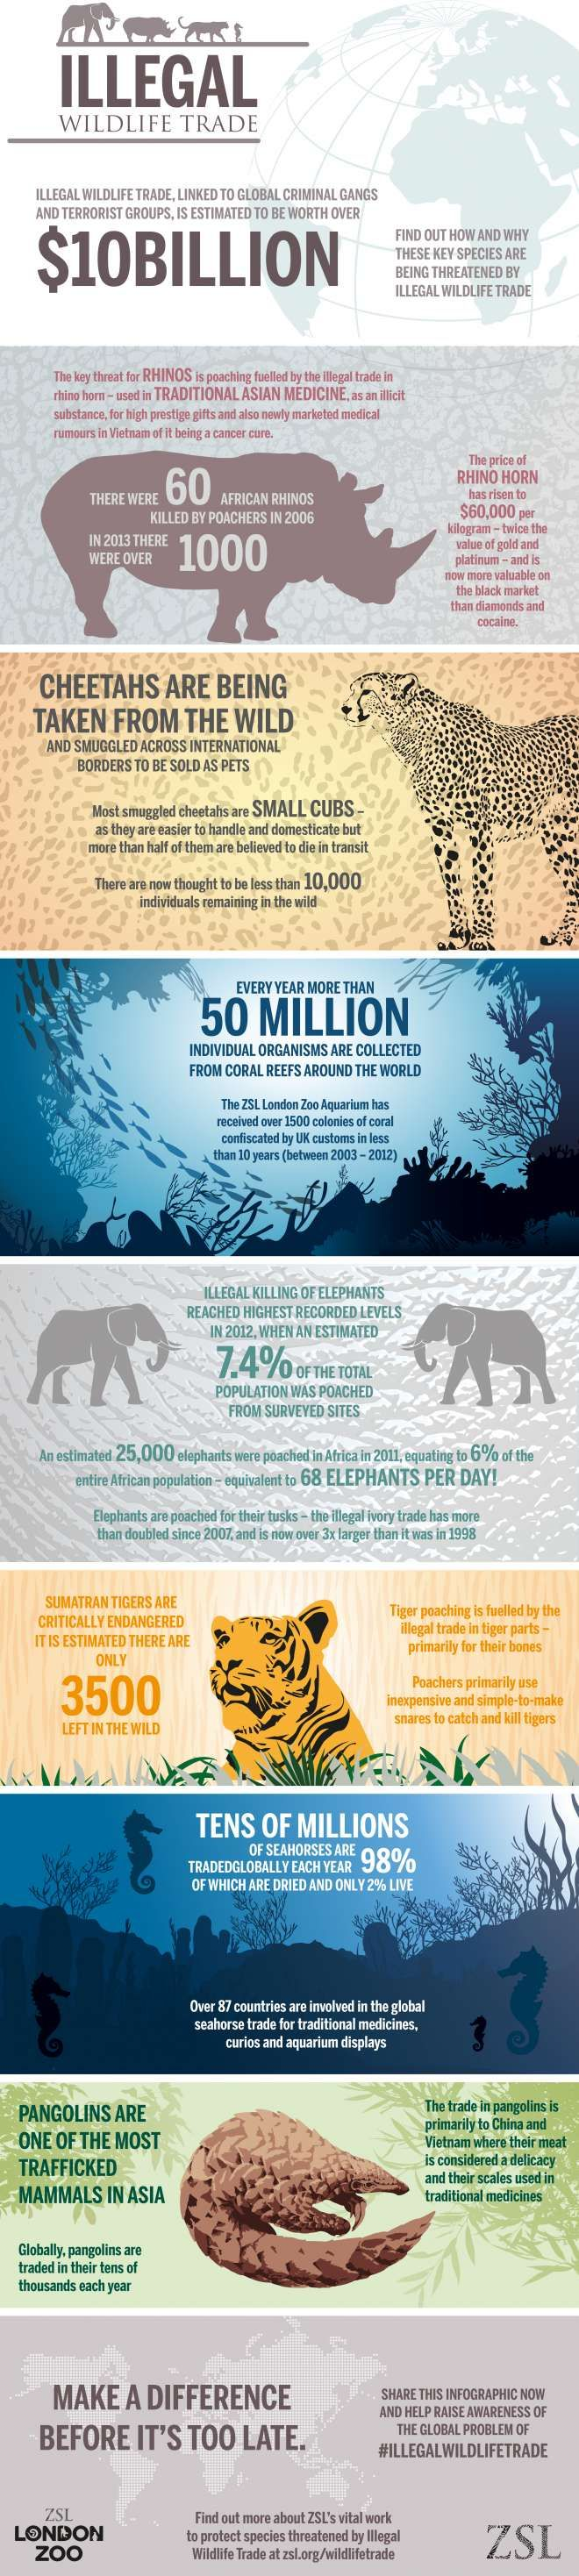 This information pertains to ways humans are decreasing populations of animals. There are a lot of statistics given for various species. Most of these actions are illegal but they are still taking place and endangering animal populations.